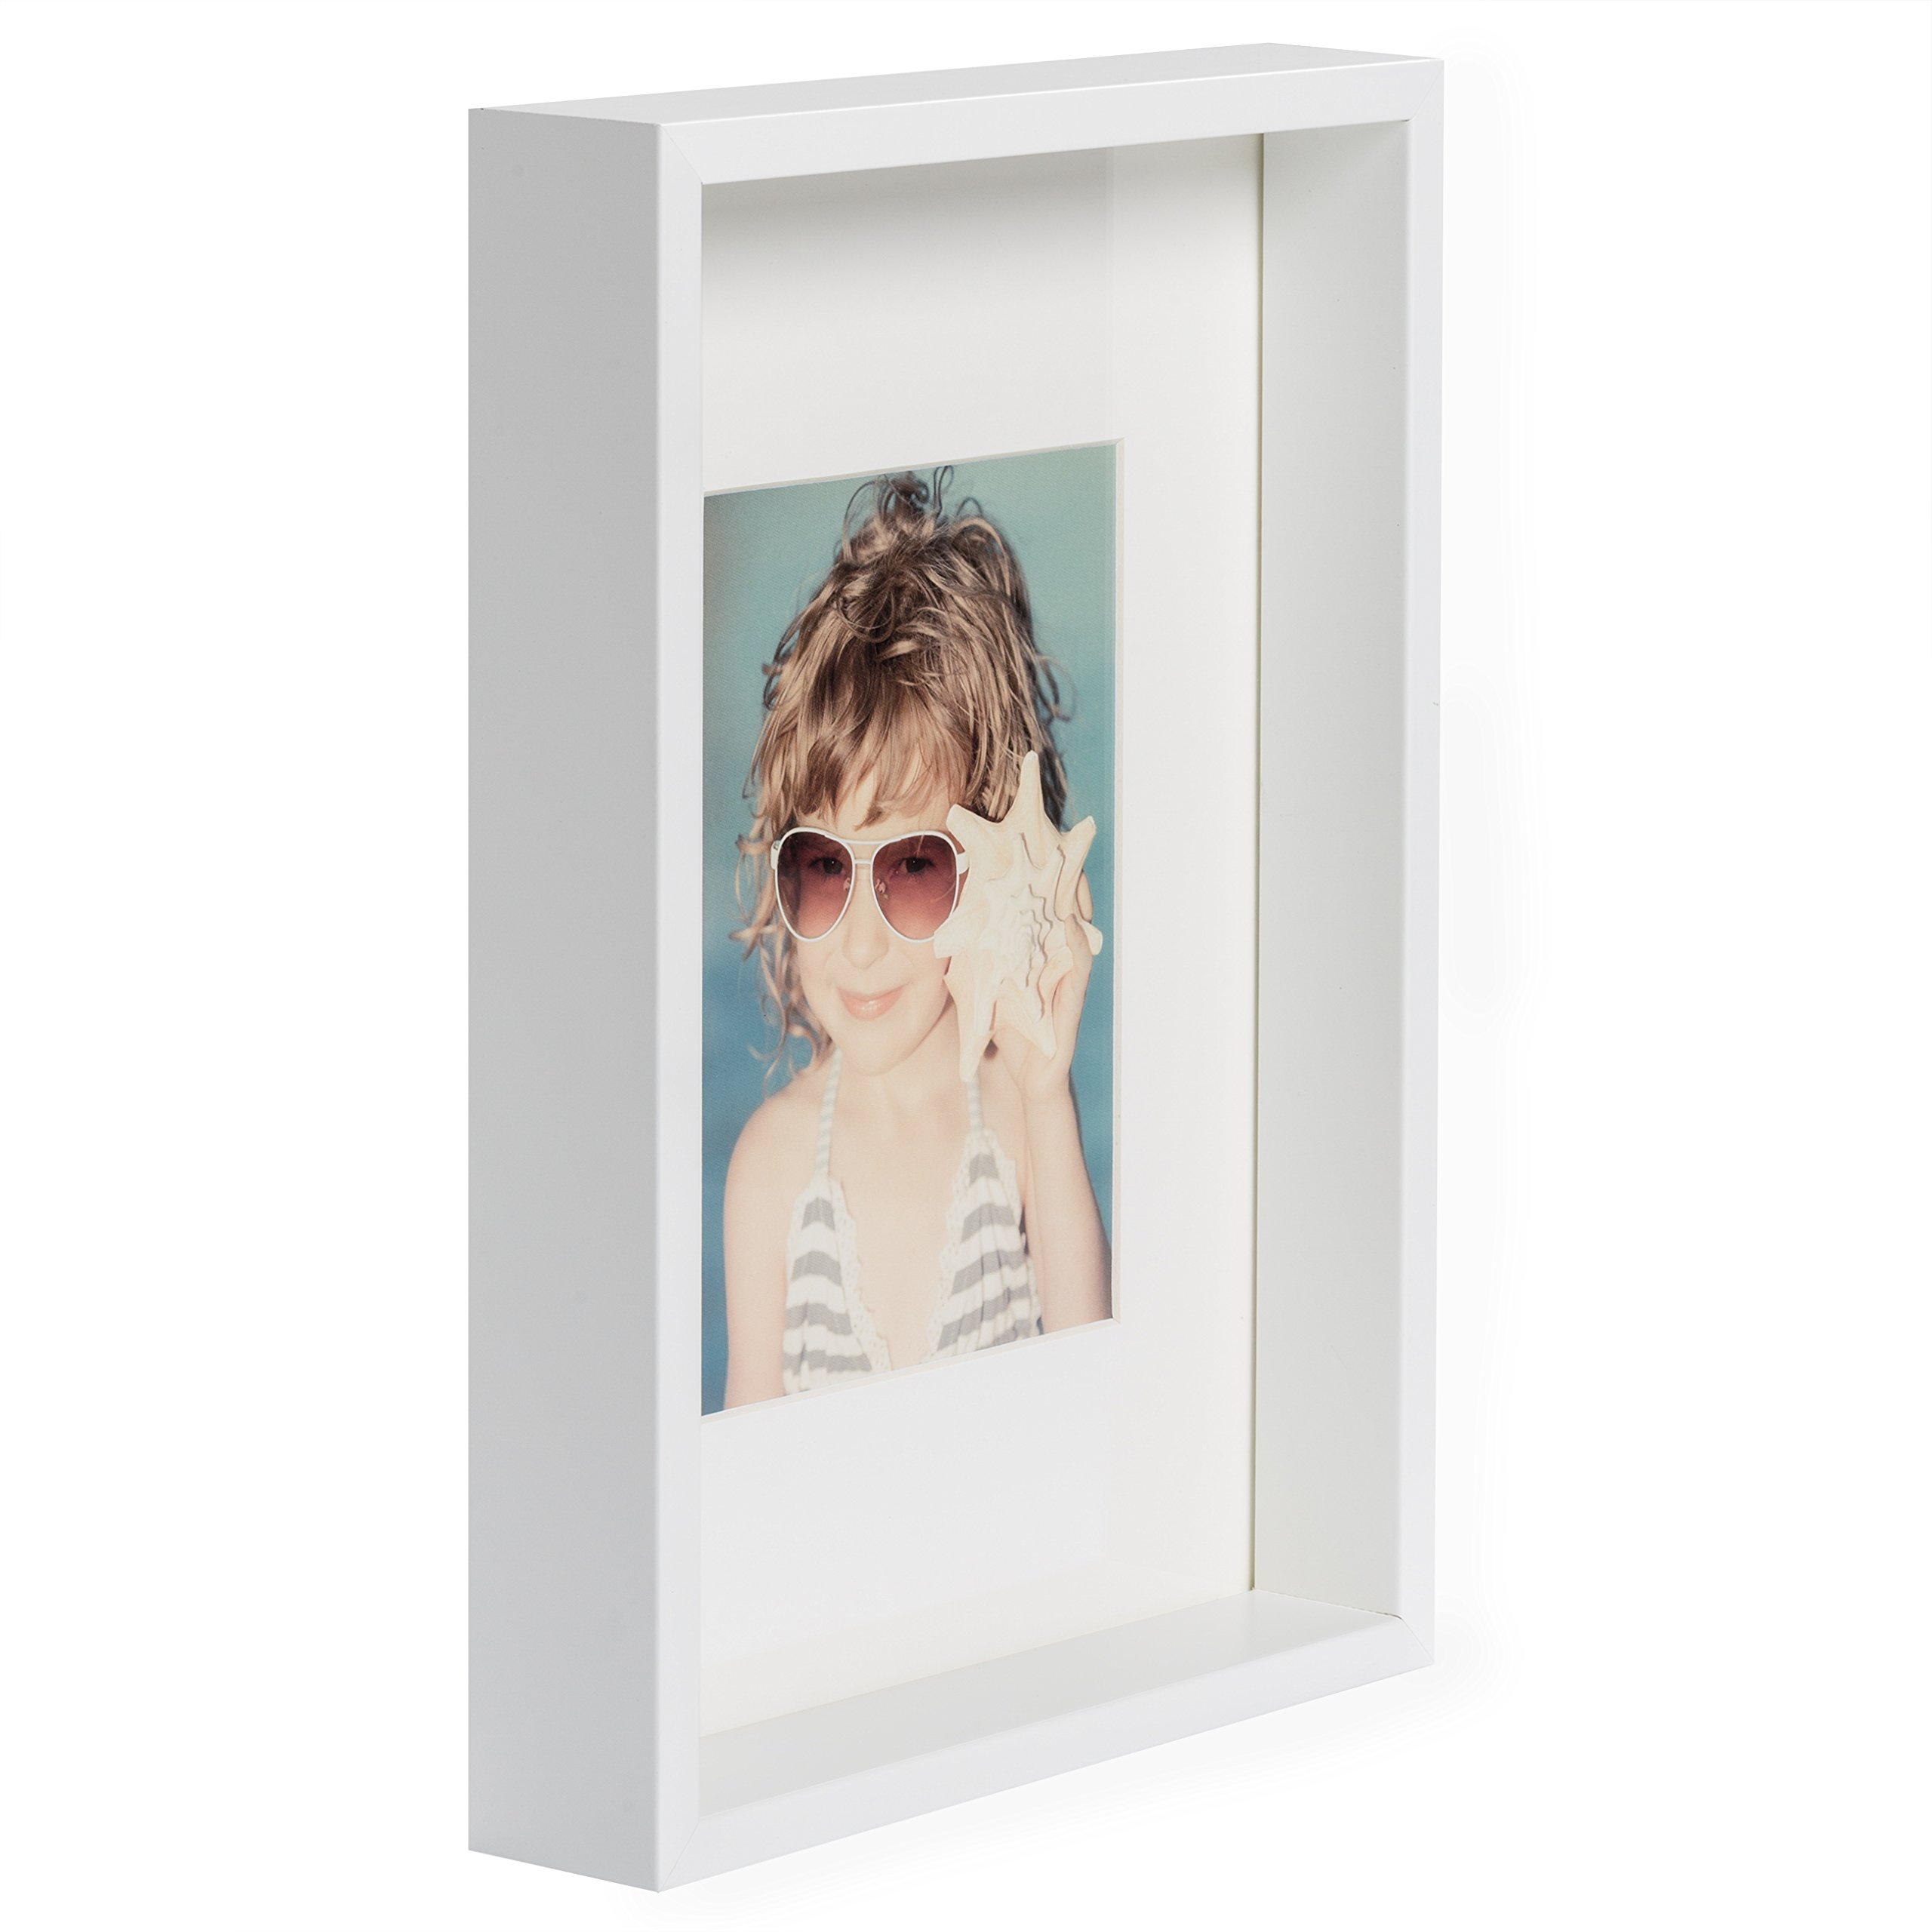 BD ART A4 White Box Picture Frame - Hanging and Standing Display by BD ART